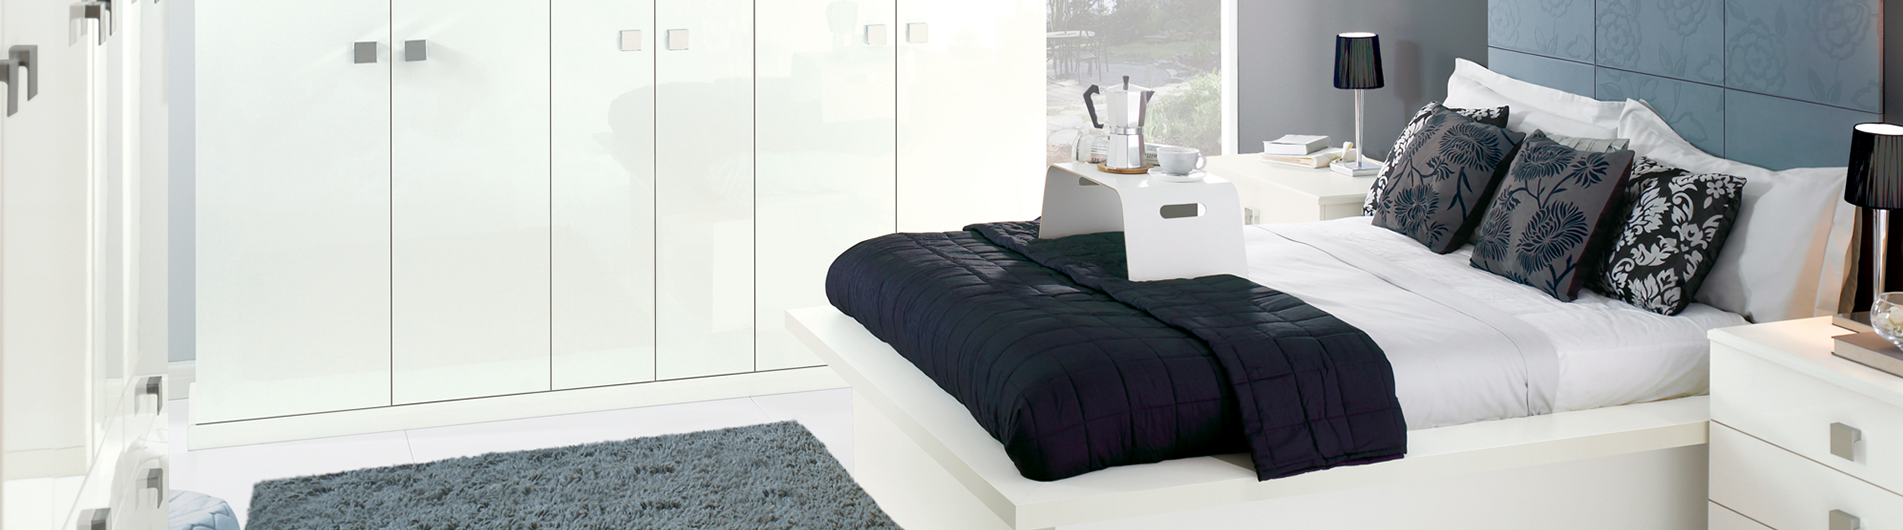 Blue, white and black colour themed bedroom with a breakfast tray stand on the bed.